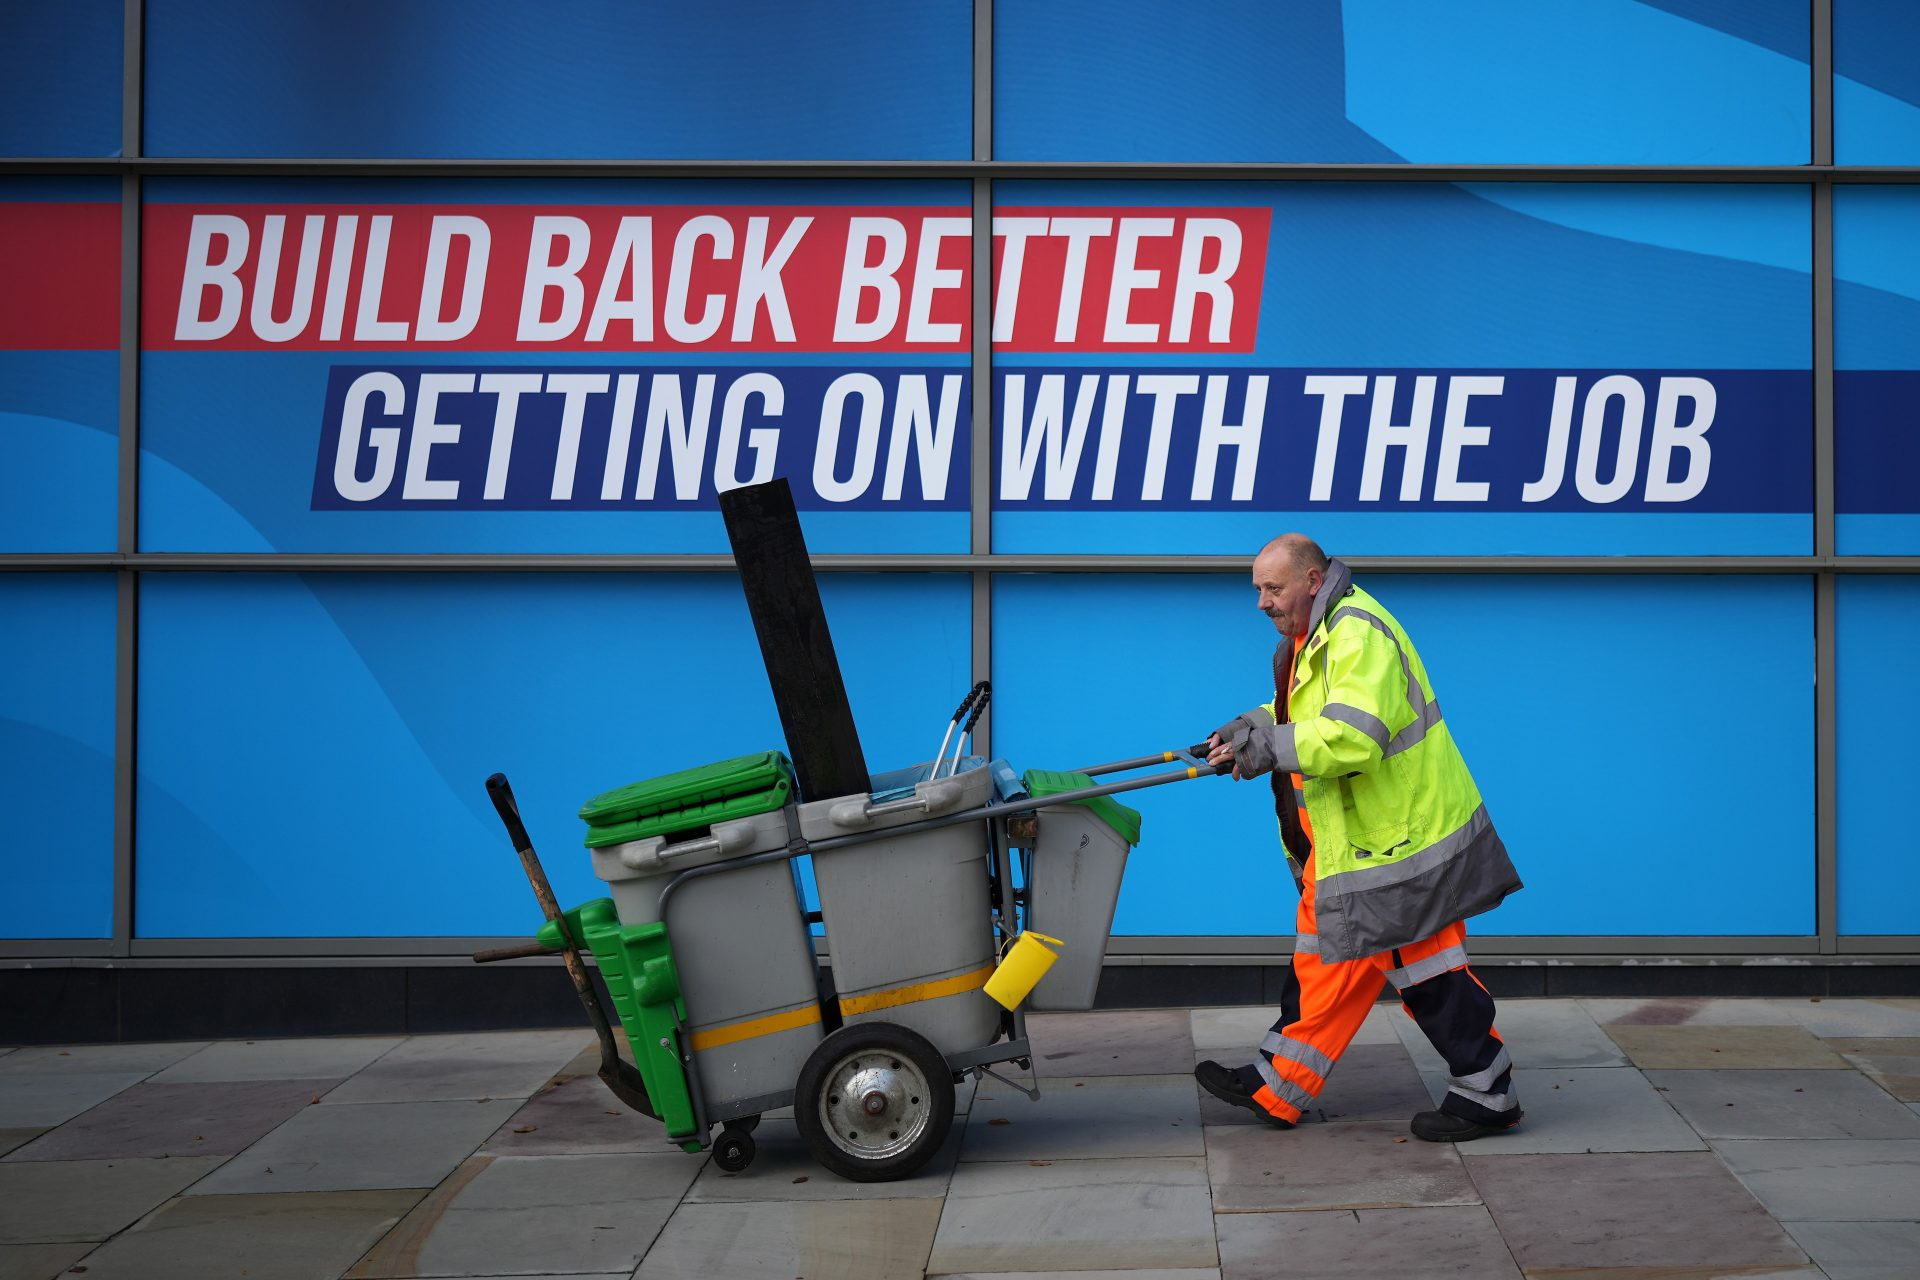 Who is most trusted not to make a mess? A street cleaner walks past a poster at the Conservative Party conference in Manchester this week. Photo by Christopher Furlong/Getty